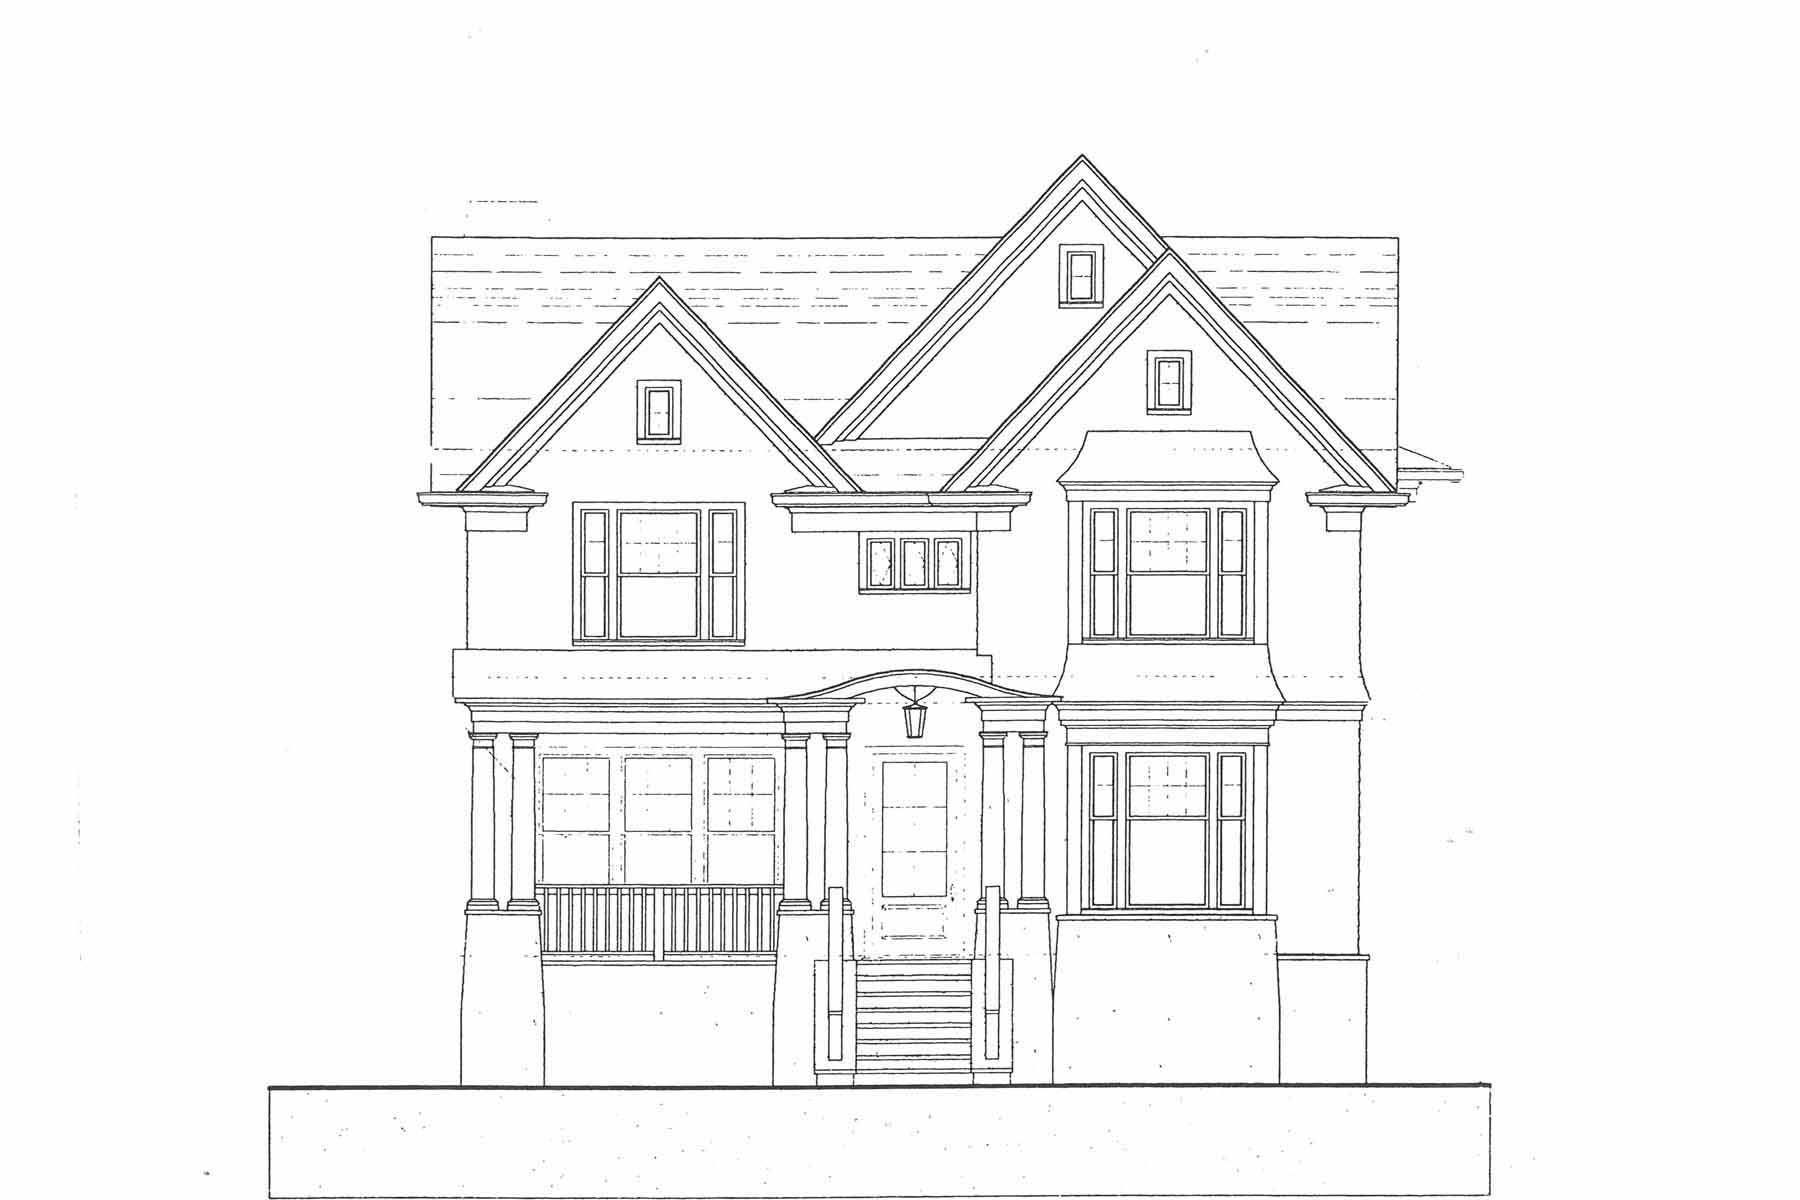 Maison unifamiliale pour l Vente à New Construction in Desirable Morningside Neighborhood 1496 Lanier Place NE Morningside, Atlanta, Georgia, 30306 États-Unis